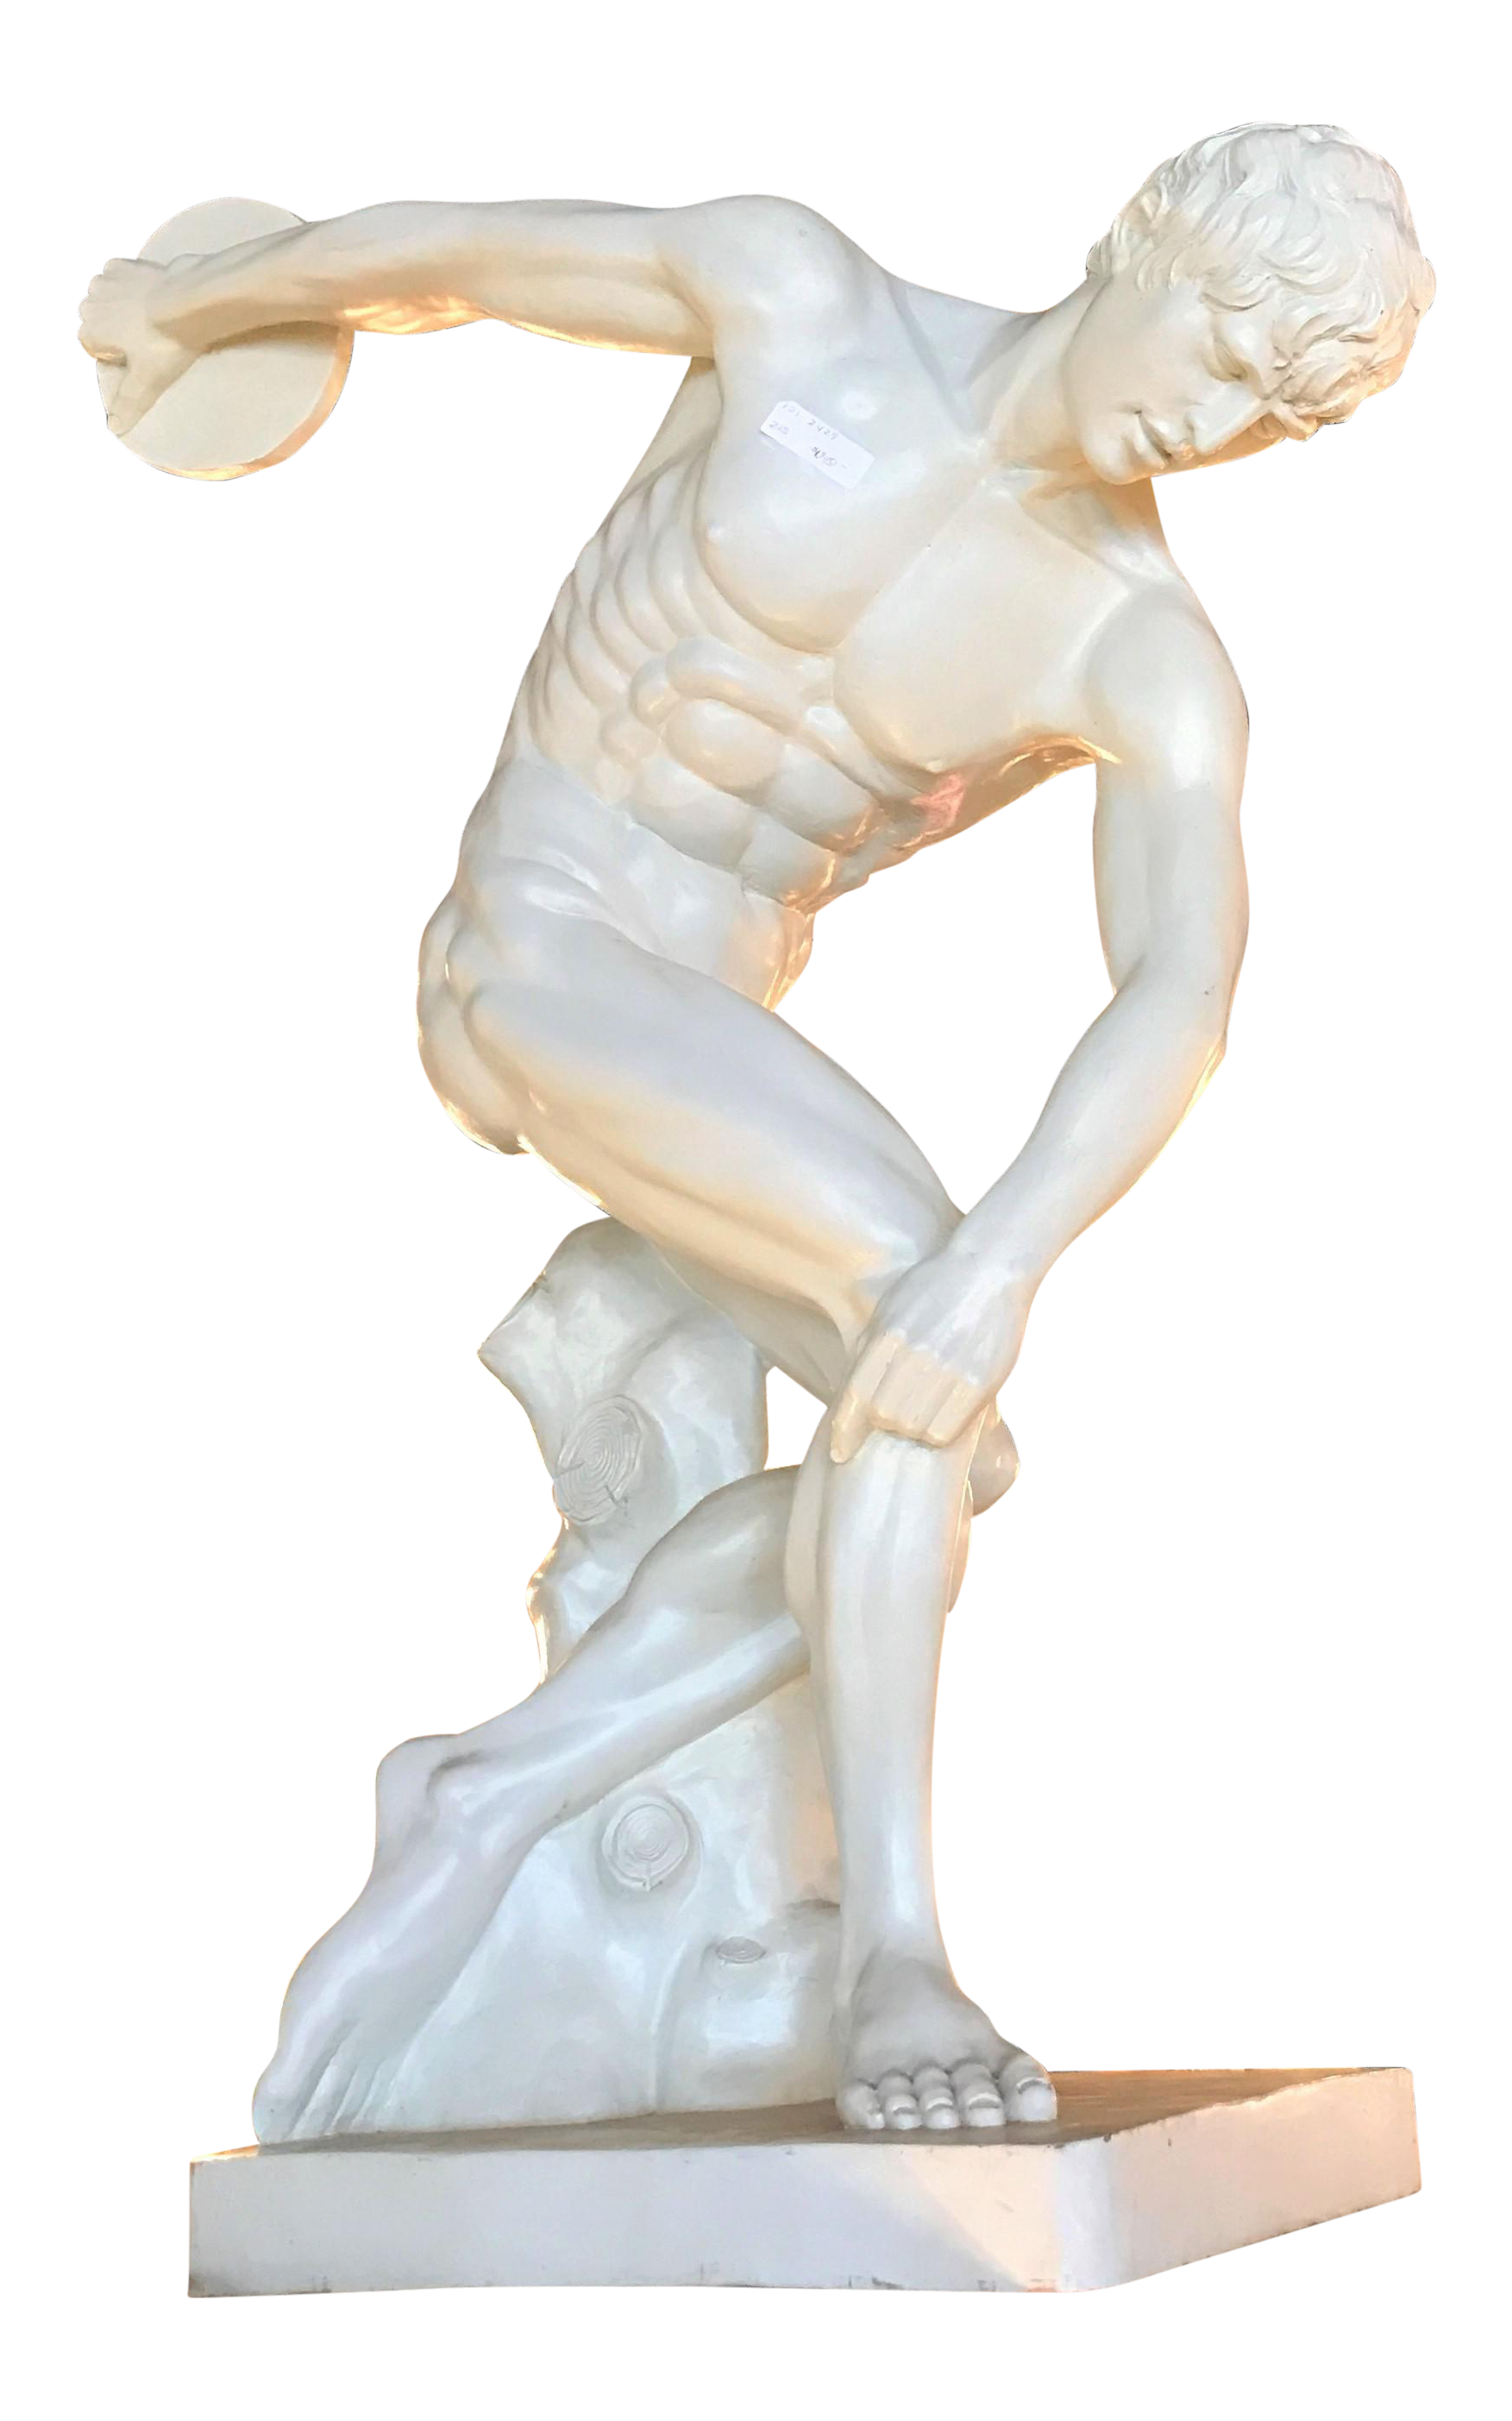 Neoclassical Style Fiberglass Life Sized Discus Thrower Sculpture Chairish